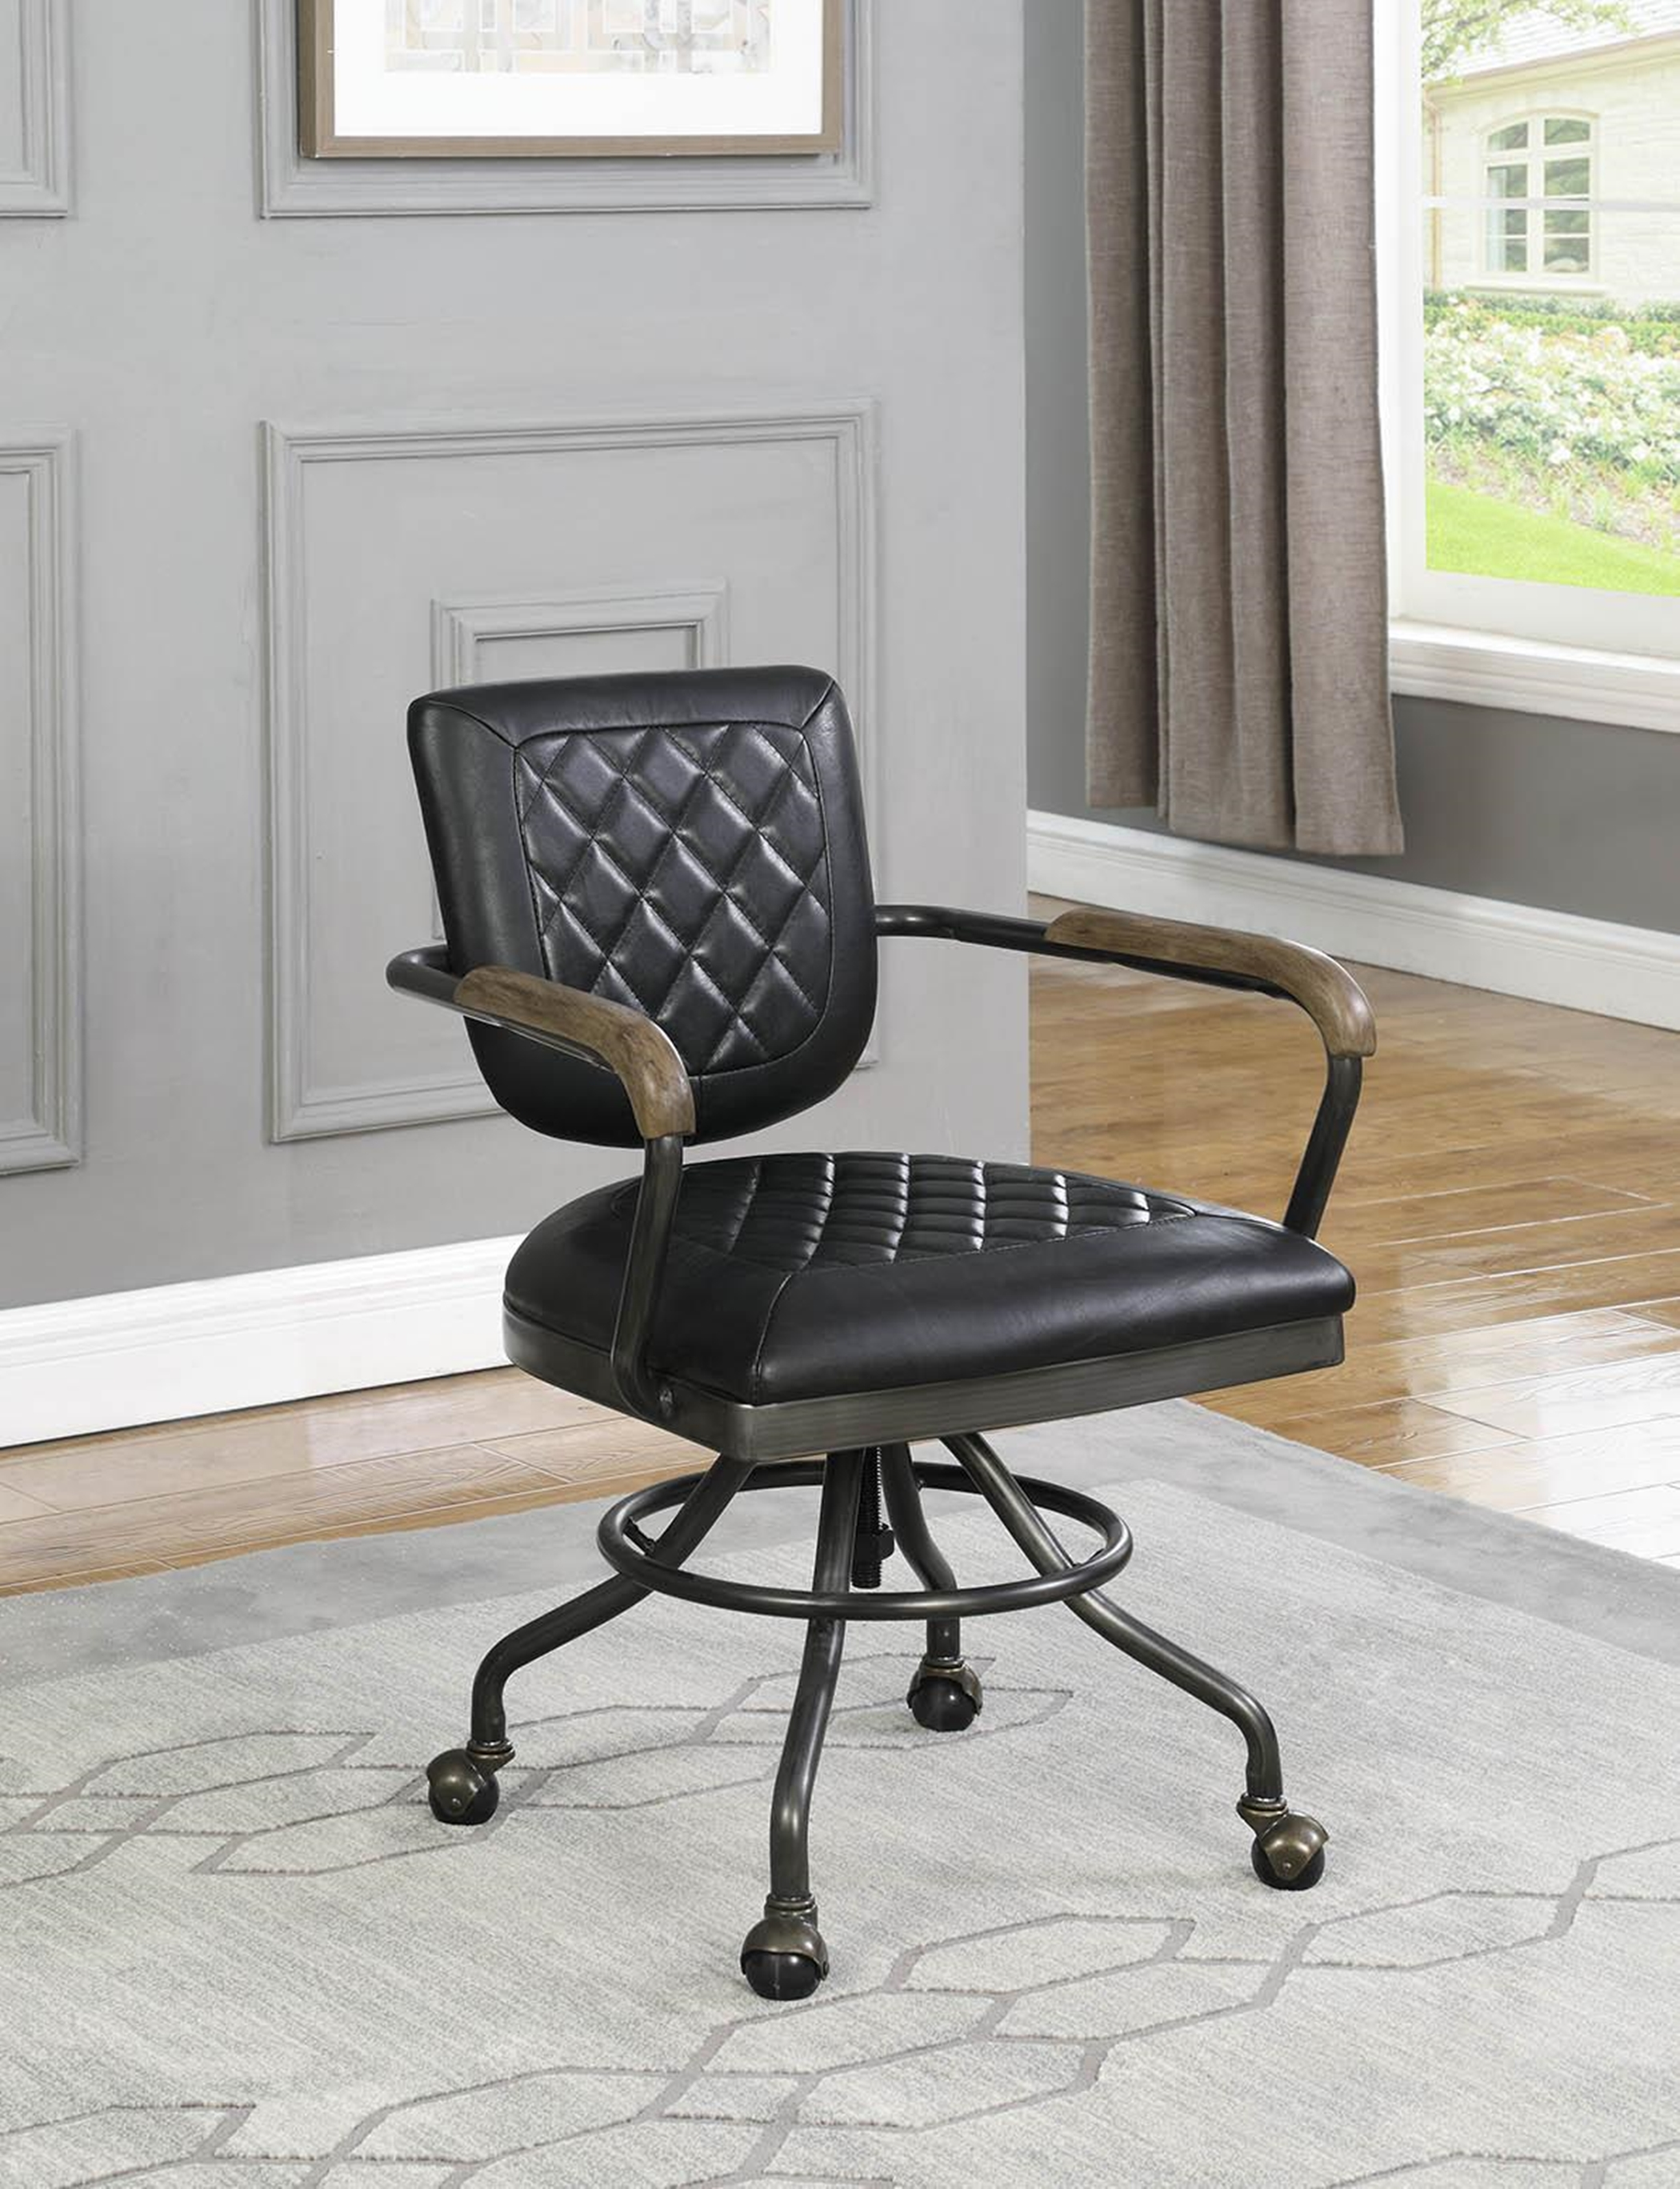 802186 - Office Chair